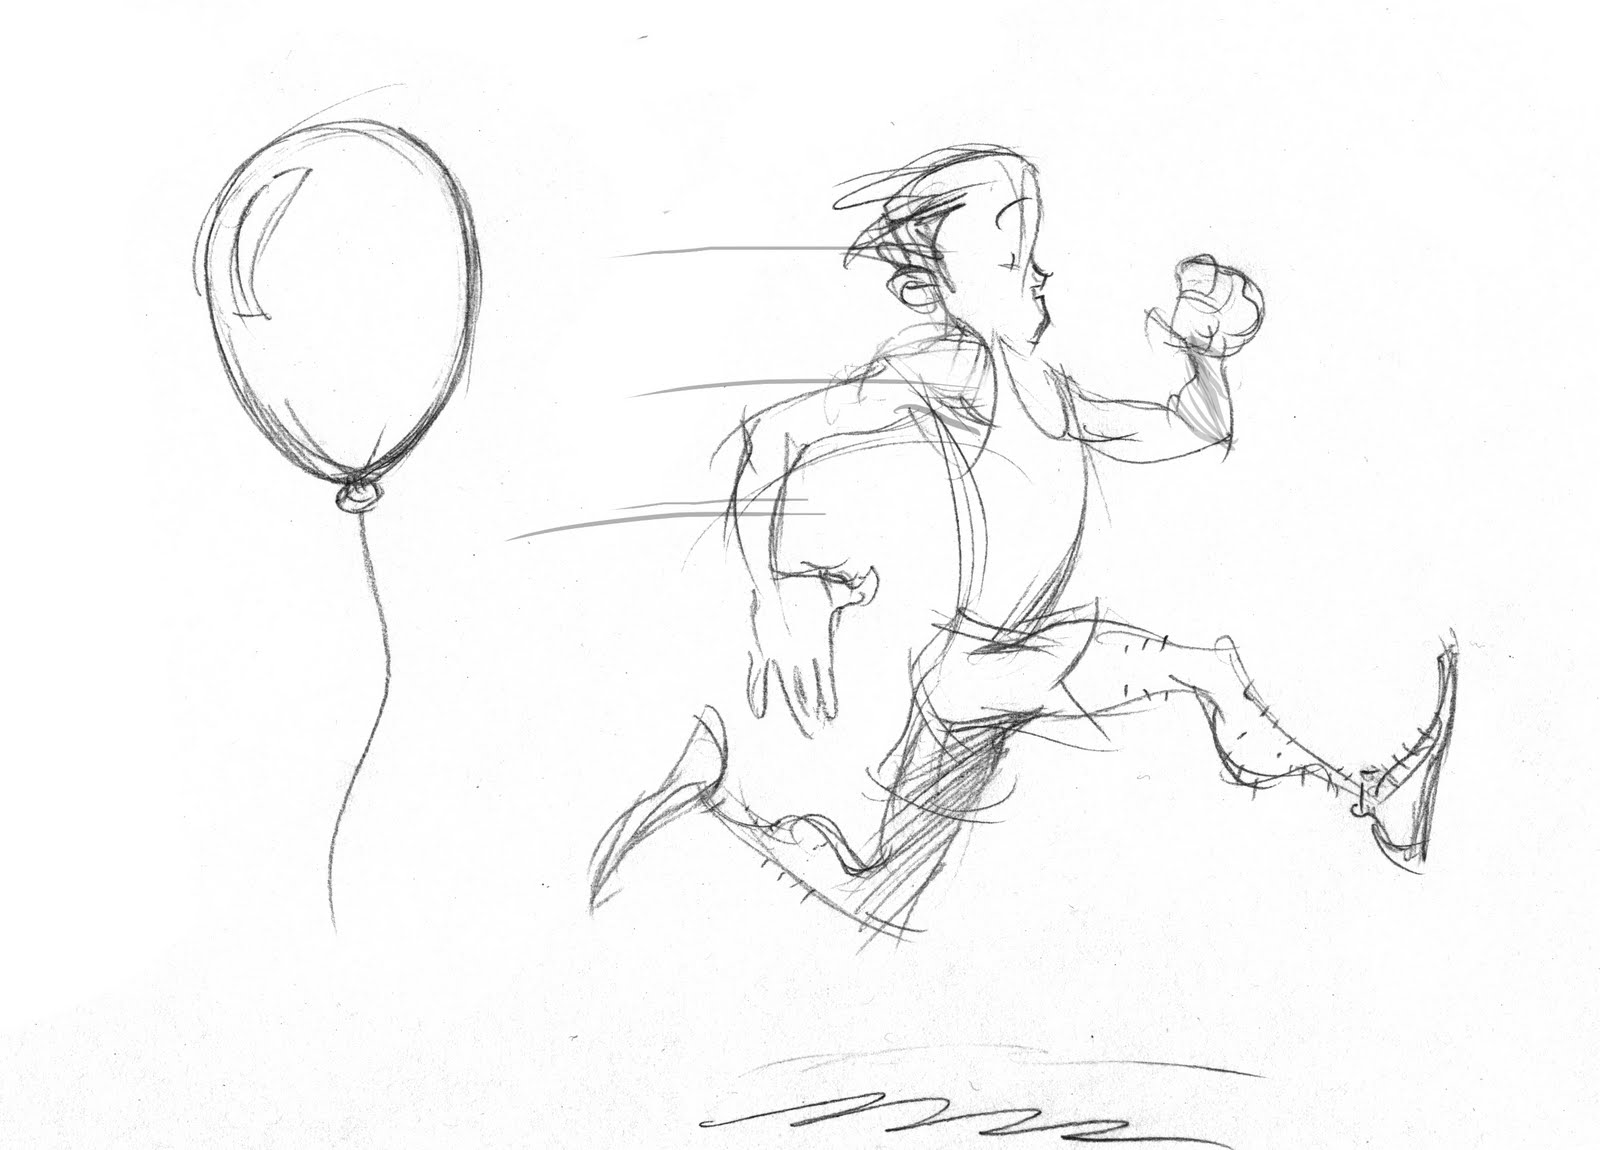 how to draw someone running sketch of someone running at paintingvalleycom explore how someone to running draw